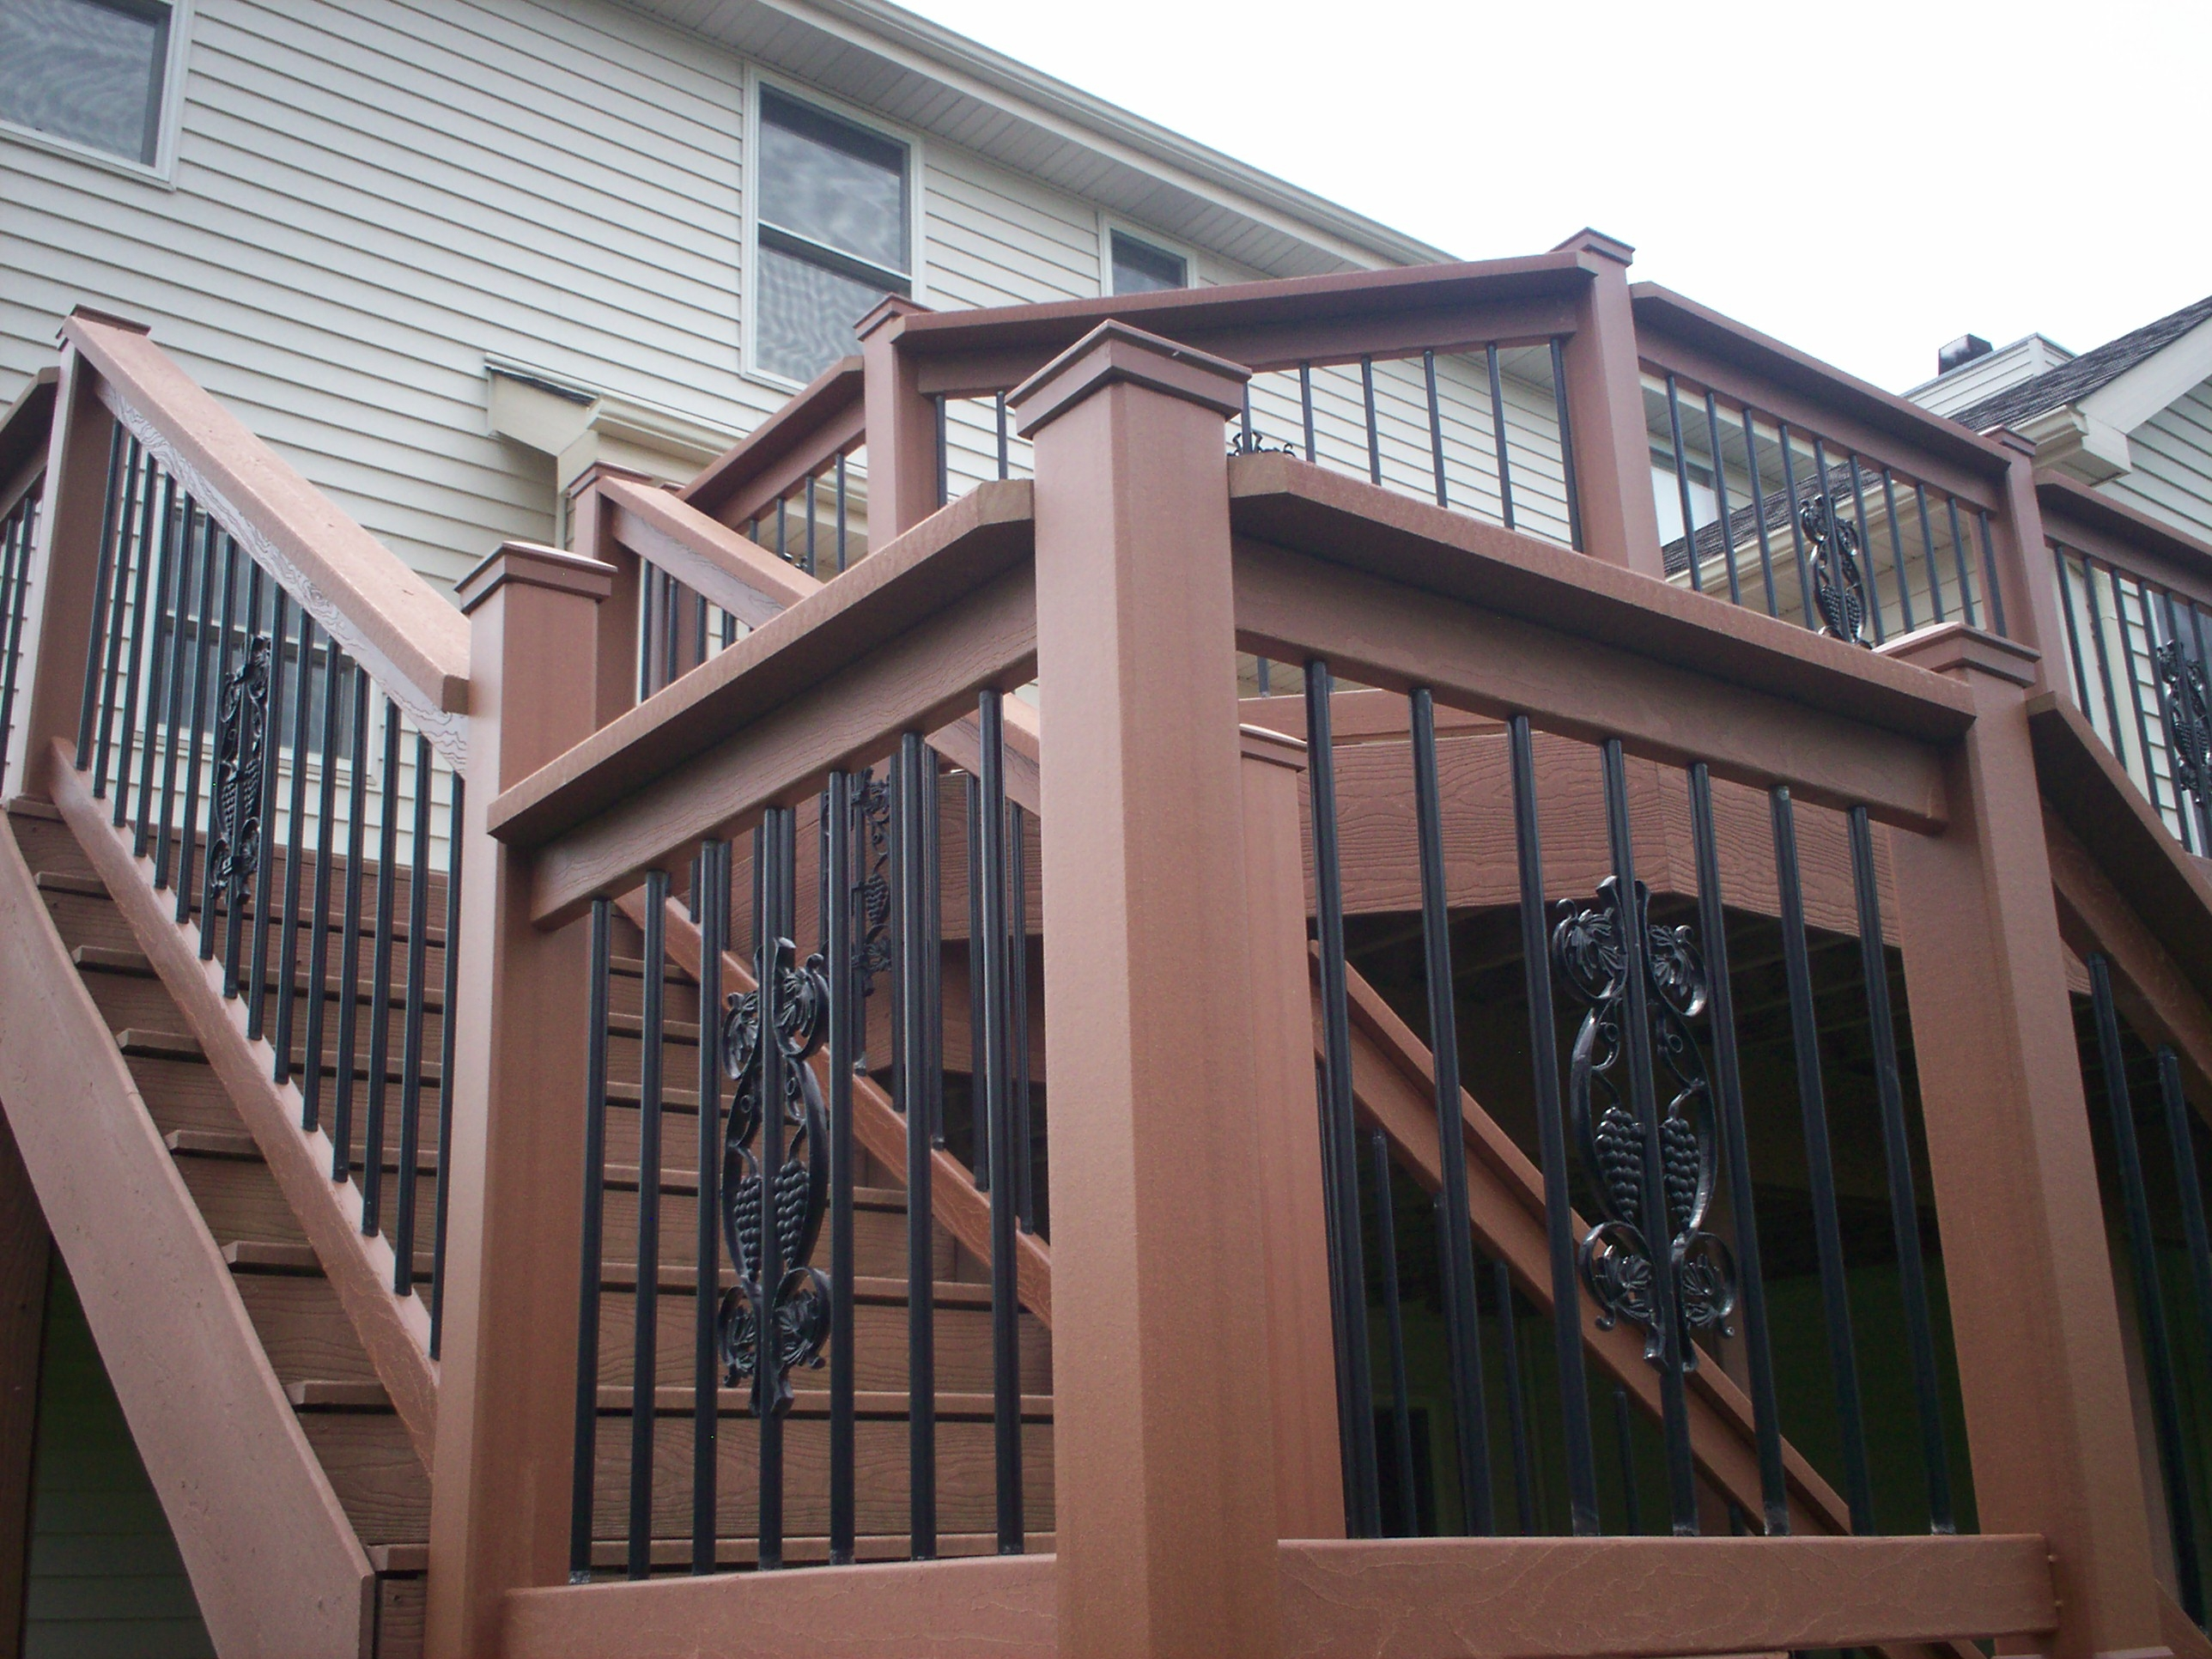 St Louis Deck Design Step It Up With Deck Railing And Stairs   Menards Wrought Iron Railing   Handrail   Deck Railing   Spindles   Fence   Cattail